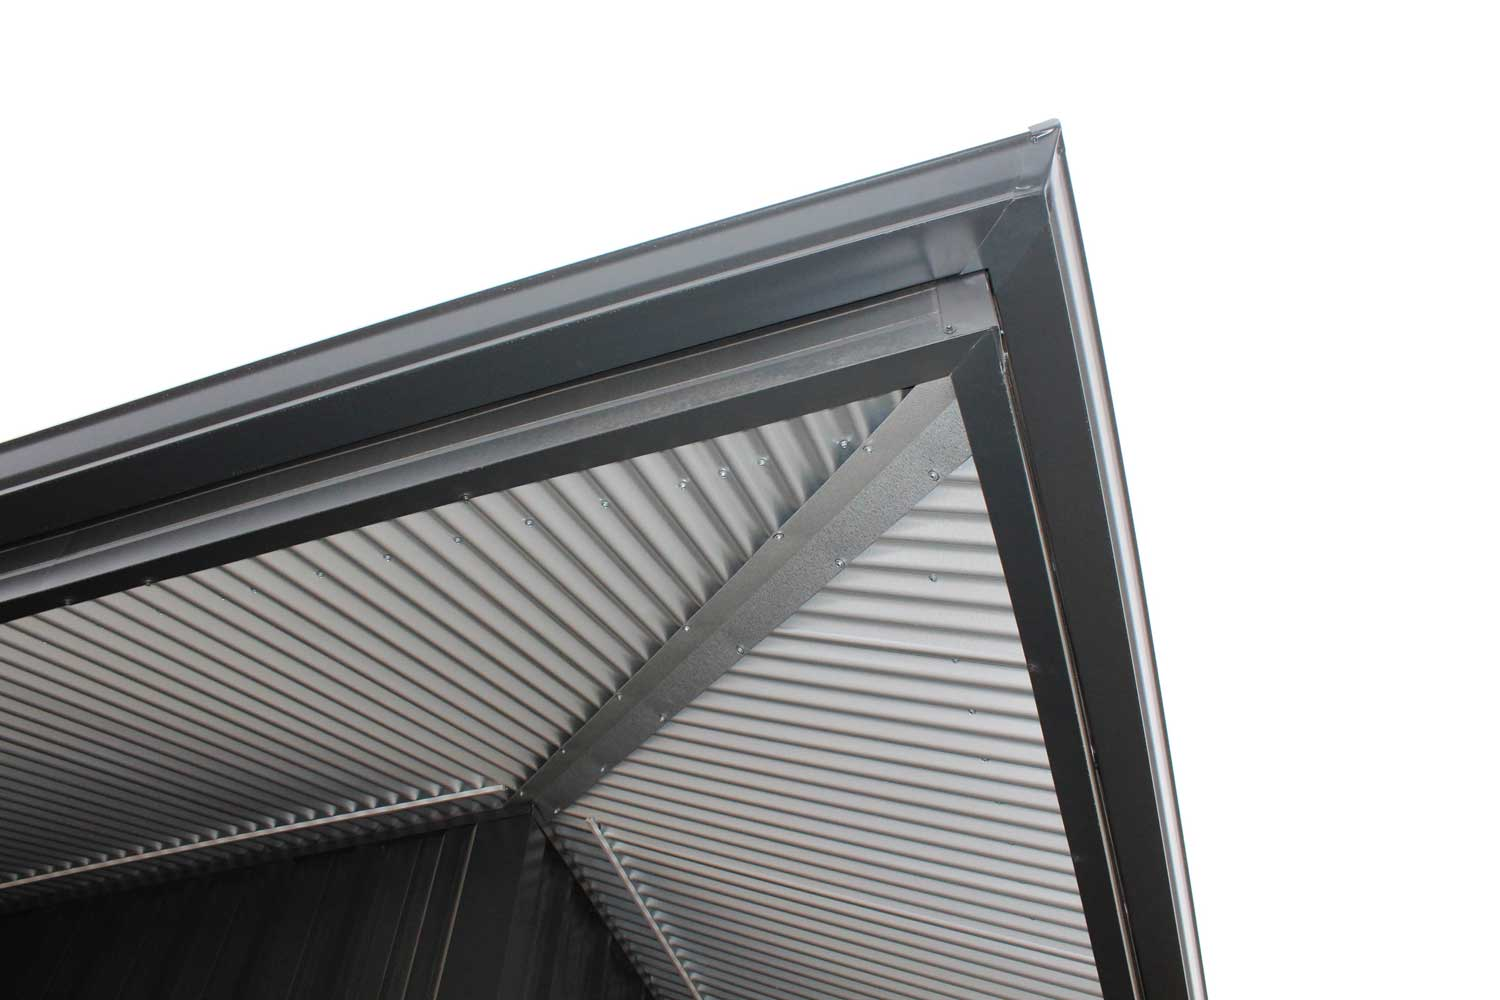 Commercial Building with Corrugated Soffit